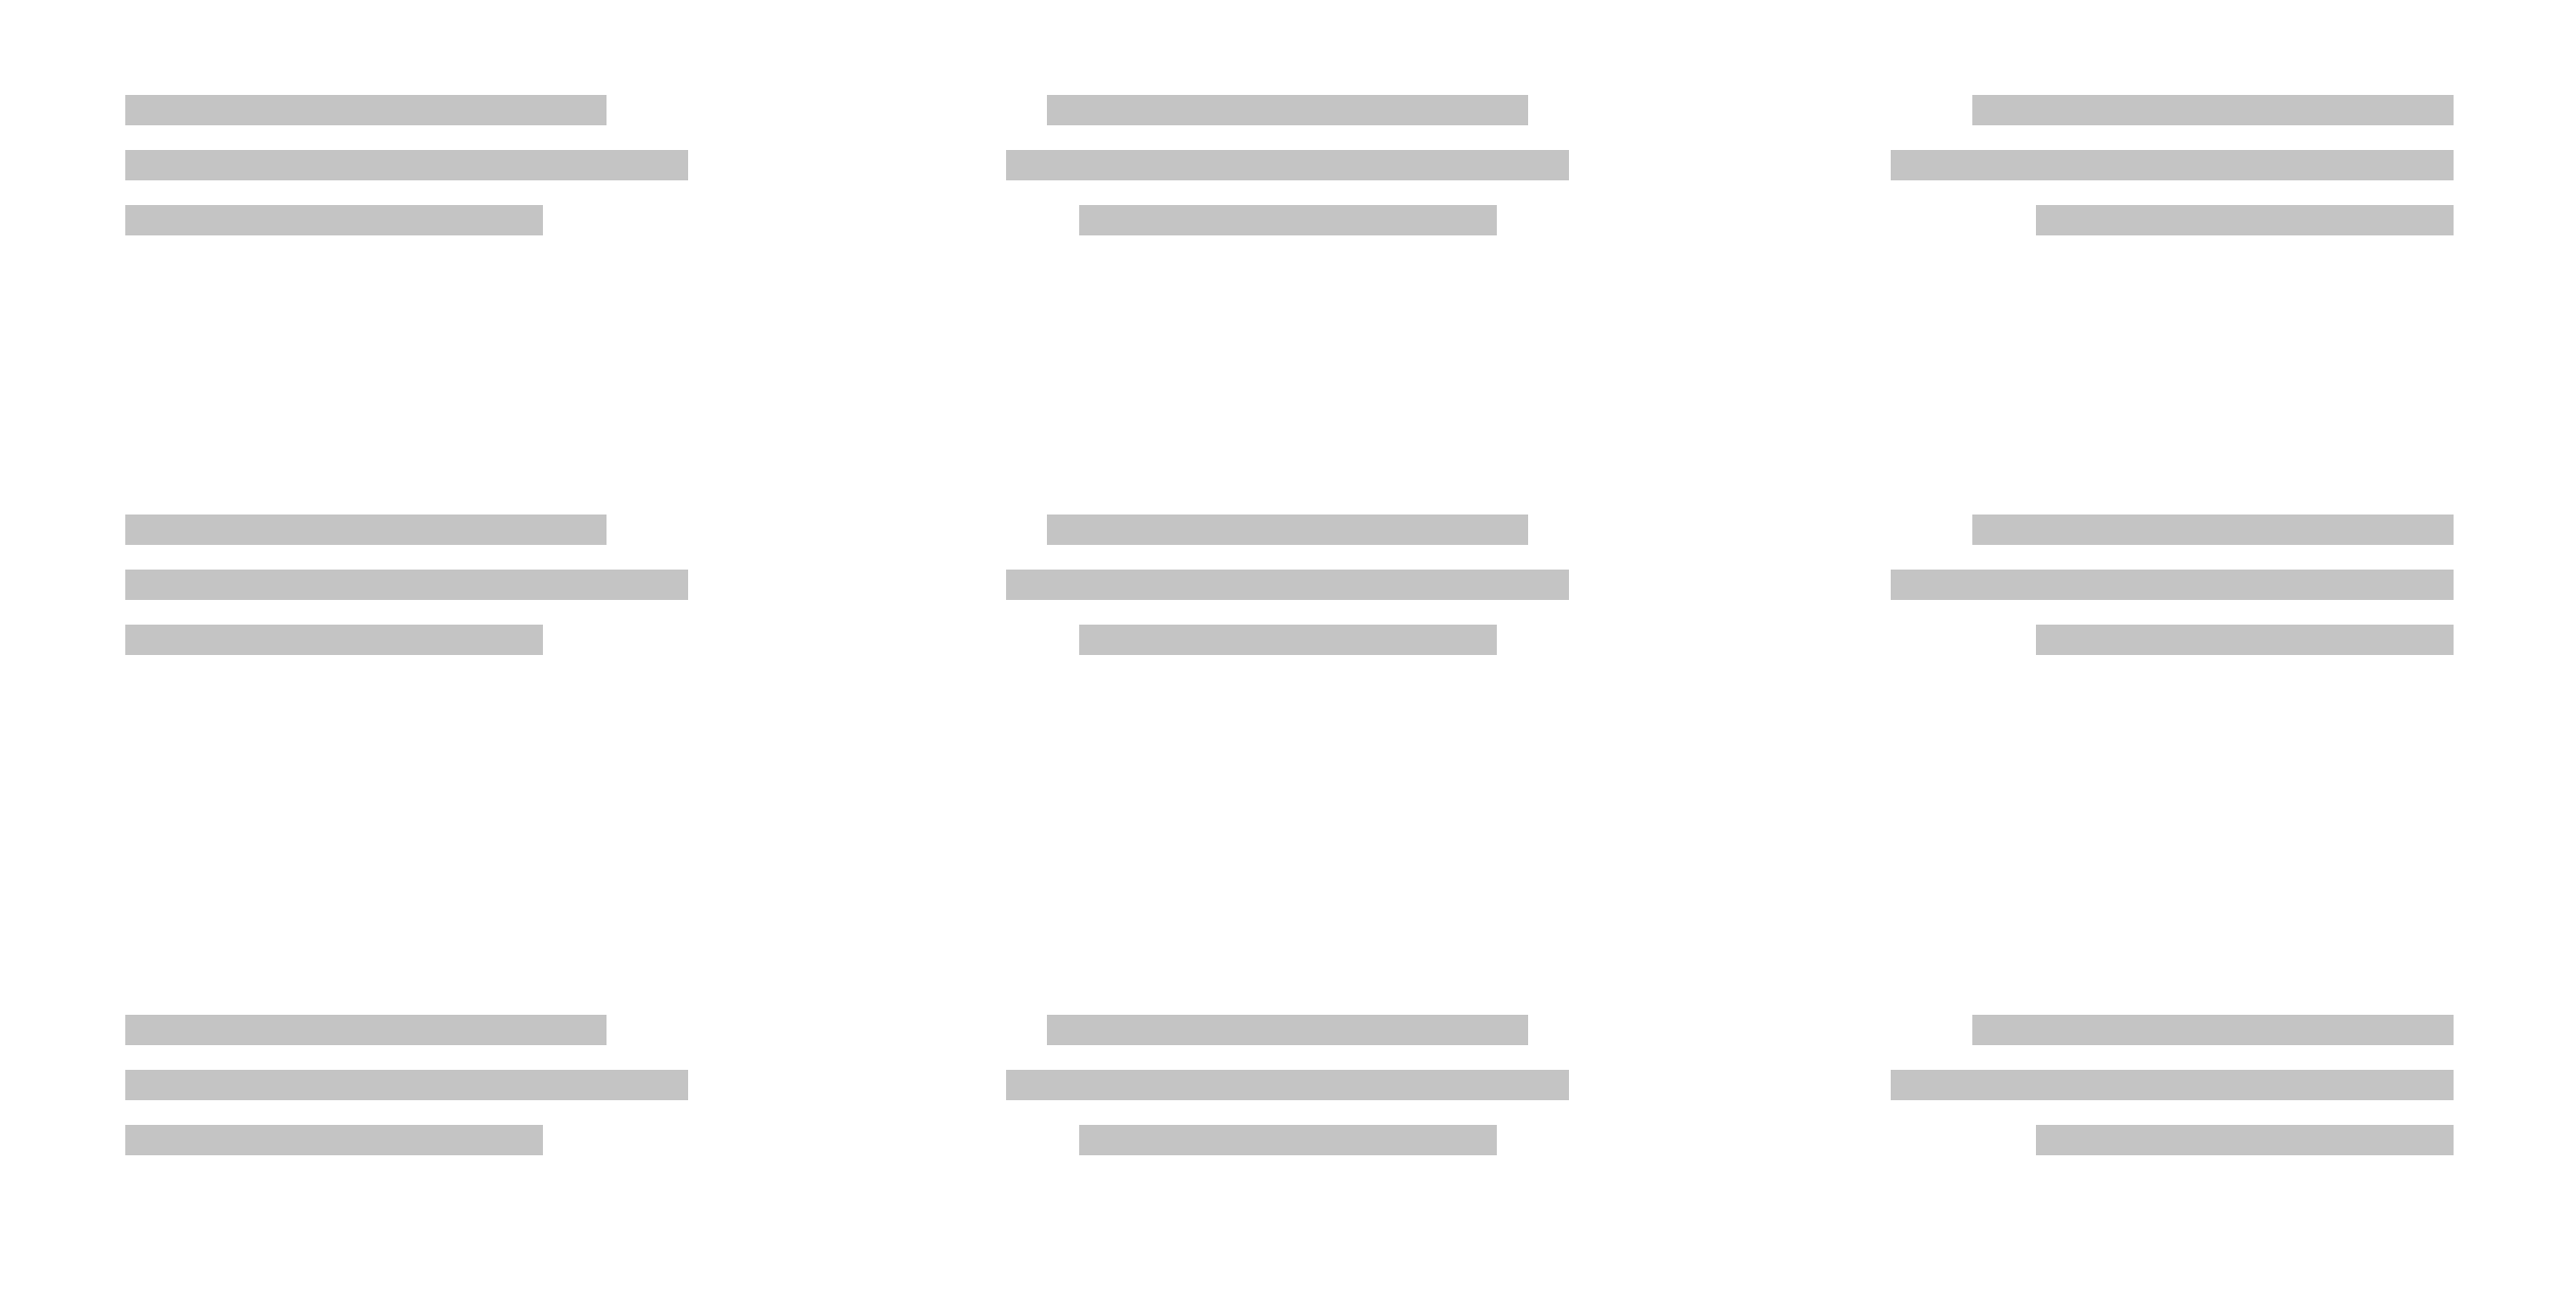 Blank view showing abstract text placed in the nine potential spots where it would be allowed: top left, top middle, top right, middle left all the way to bottom right.